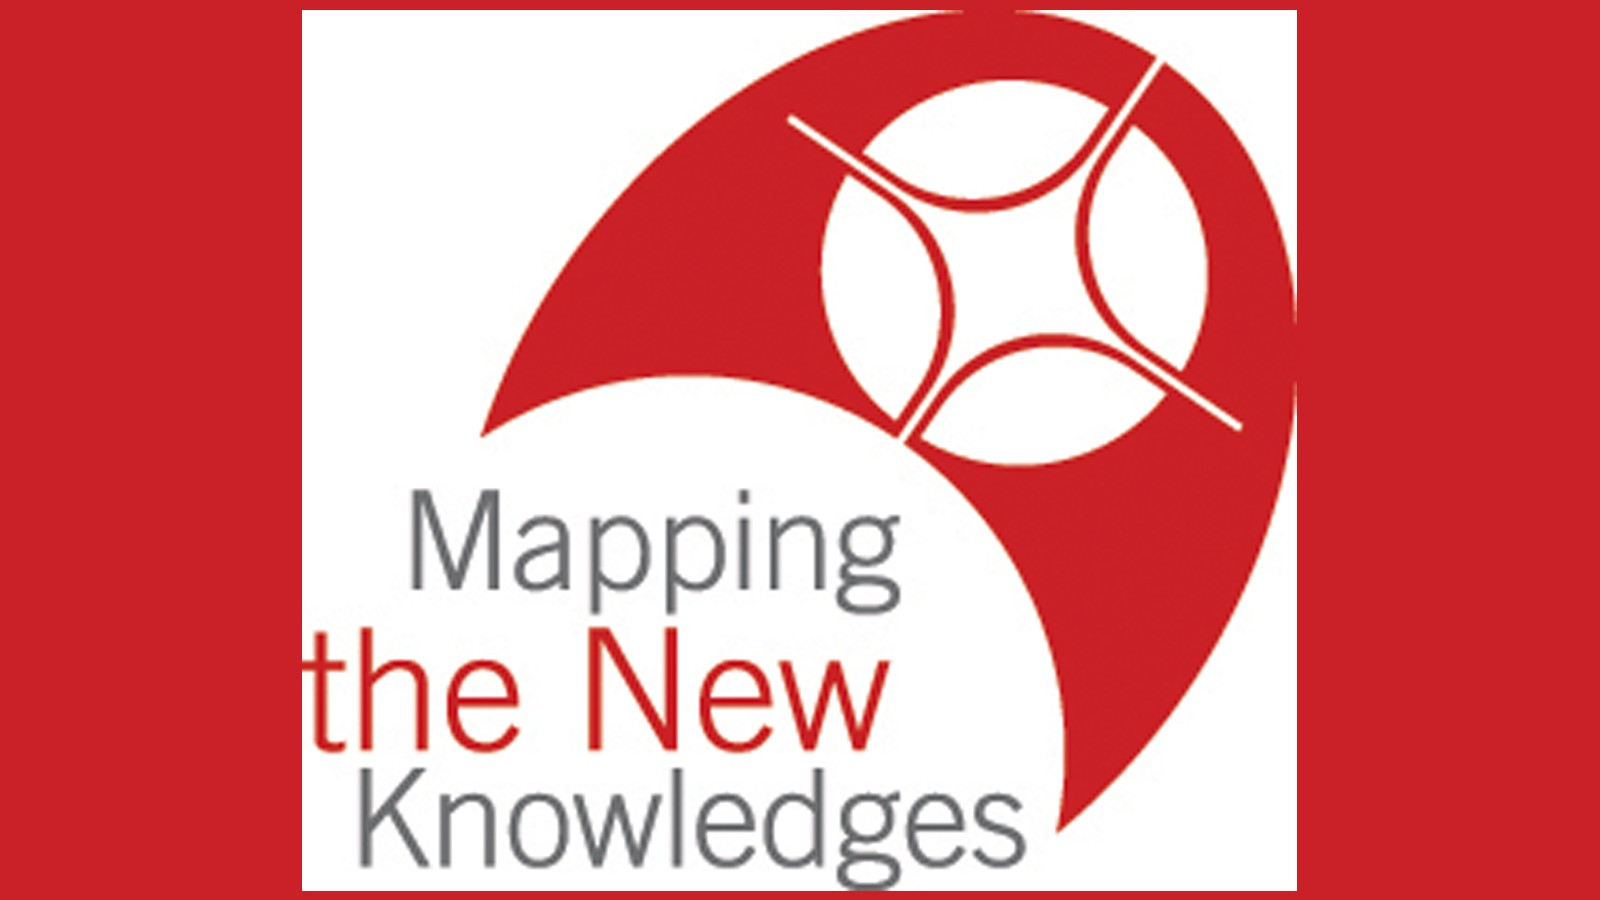 Mapping the New Knowledge graphic